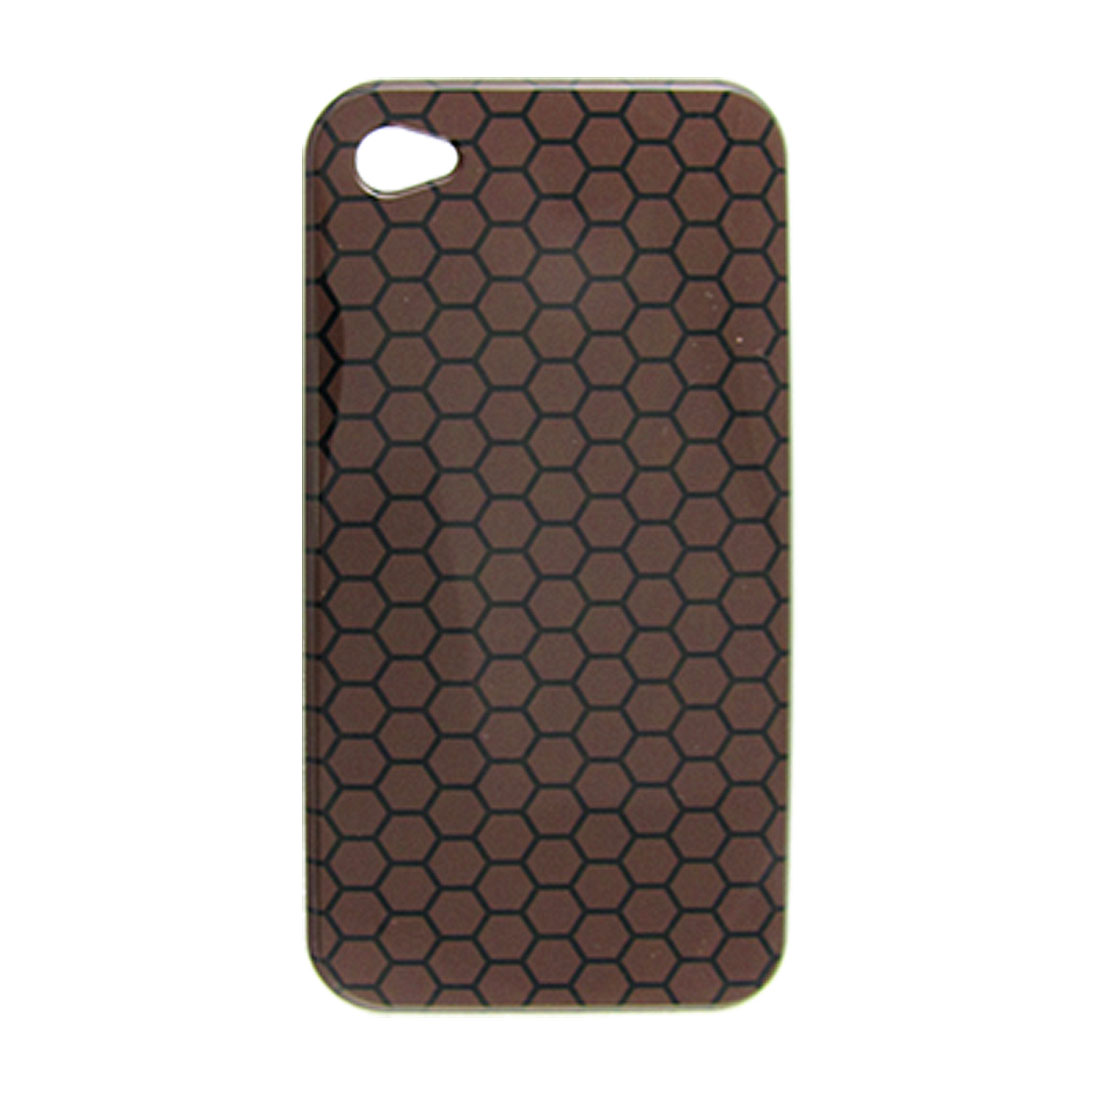 Coffee Back Black Hexagonal Plastic Case for iPhone 4G